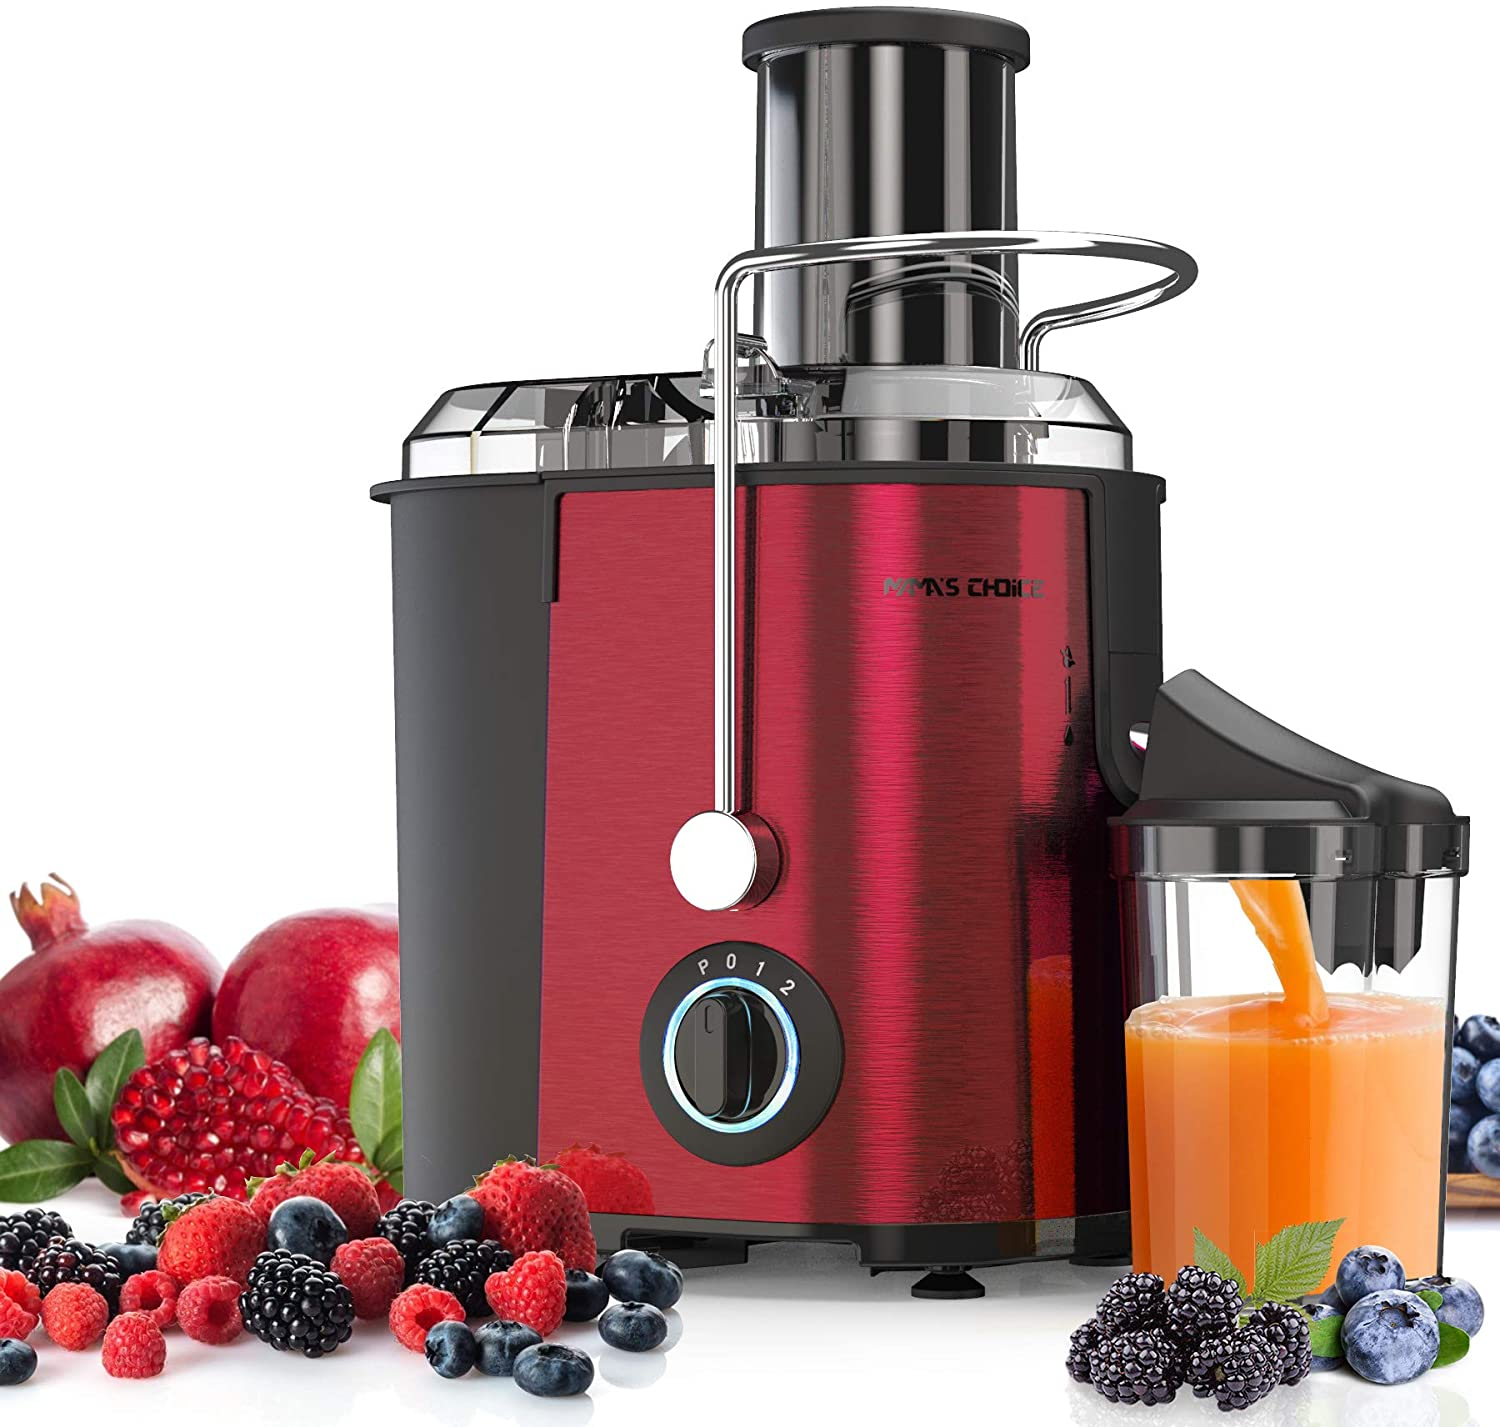 MAMA'S CHOICE Juicer, Juice Extractor Machines 800W, Wide Feed Chute for Whole Fruit Vegetable,3 Speed Juicer Machines Fast Extract, Anti-drip Function, Easy to Clean, Non-Slip Feet, Red